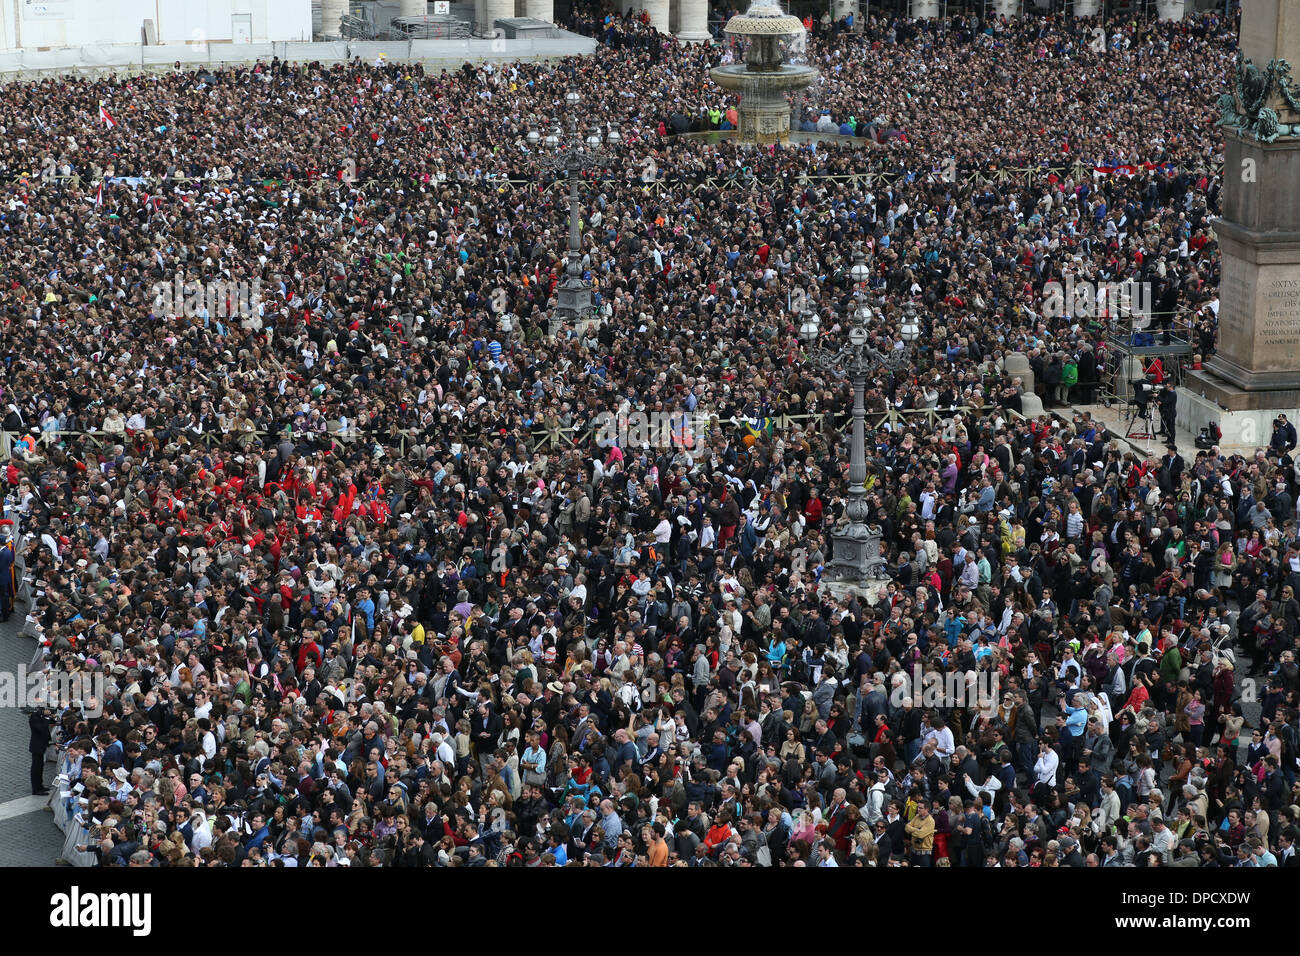 Pilgrims Wait For the Papal Address, the first Easter Blessing by Pope  Francis. Saint Peter's Square, Vatican City, Rome Italy.